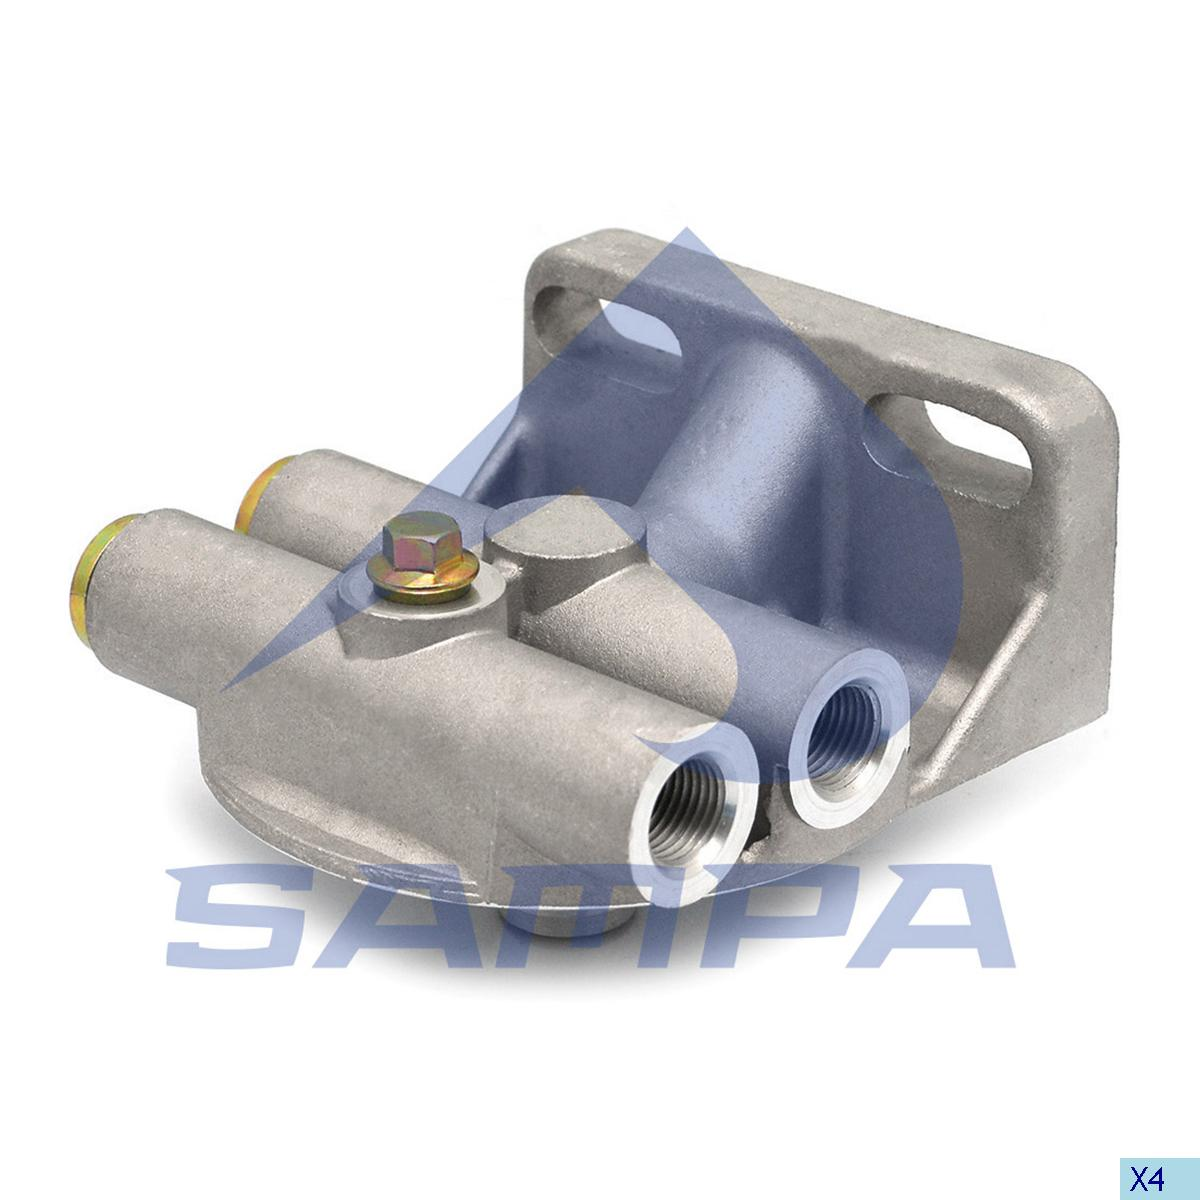 Head, Fuel Filter, Scania, Engine